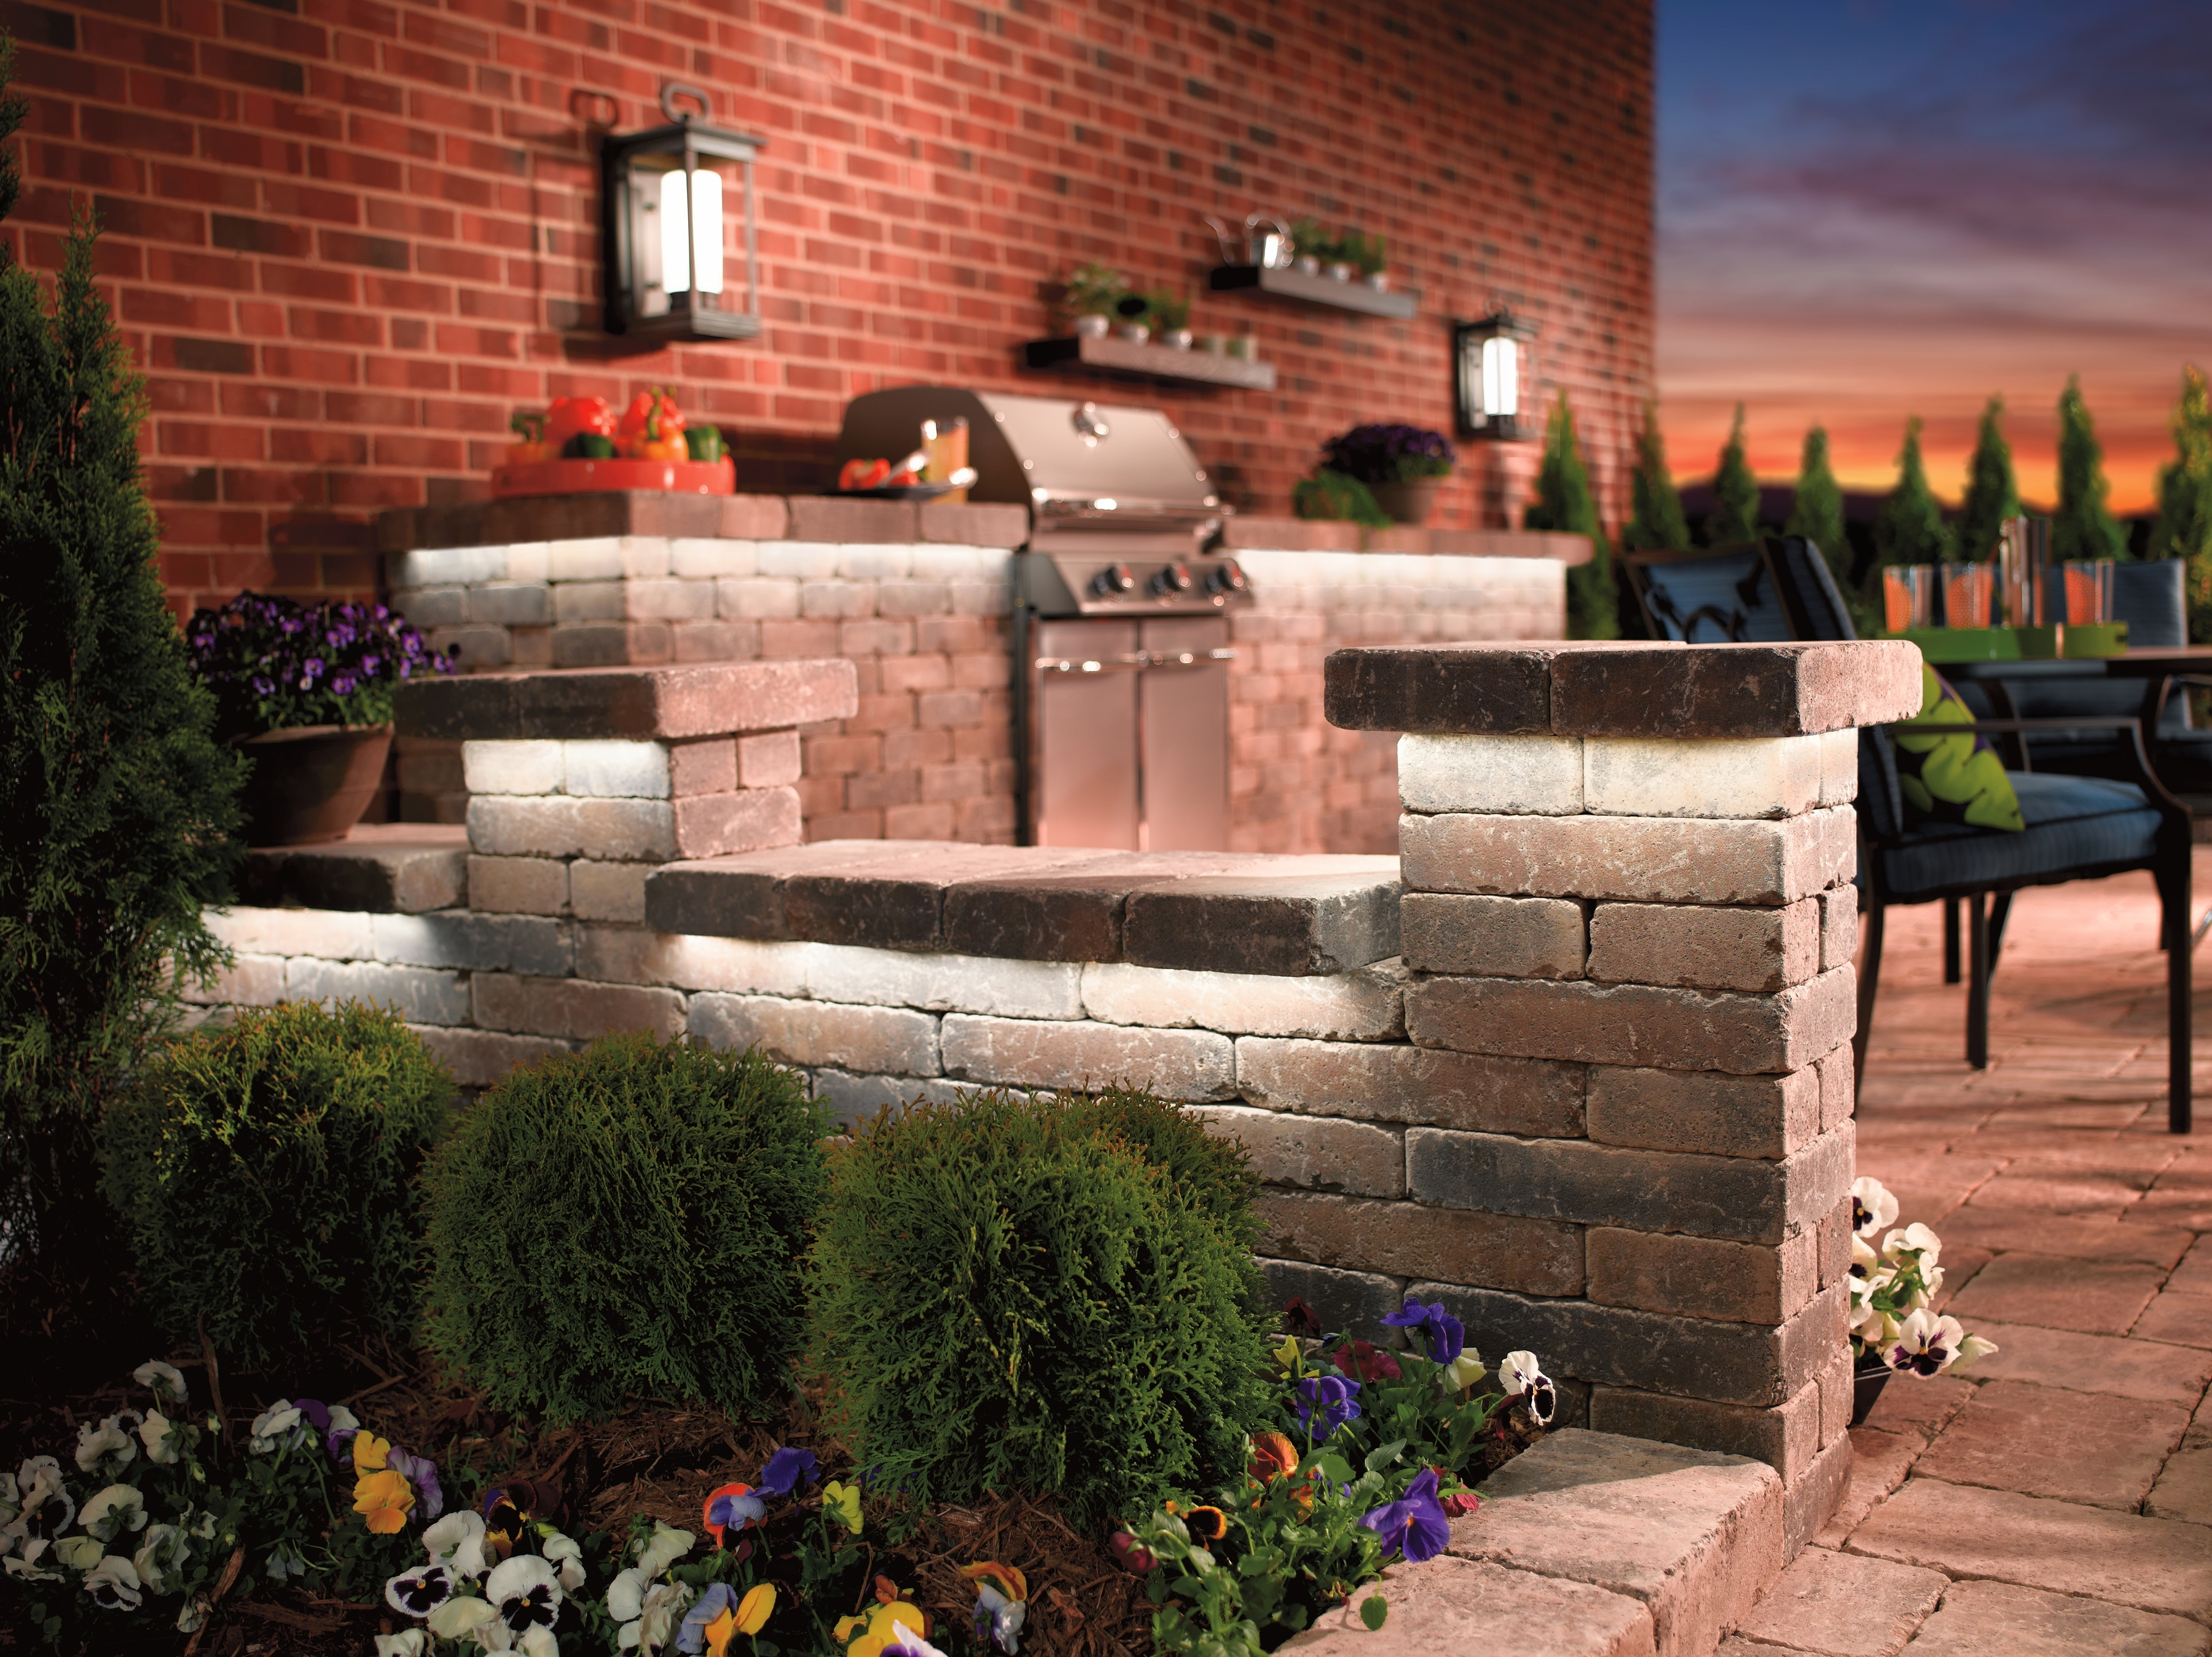 Kichler Outdoor Lanterns With Well Liked Lighting: Kichler Outdoor Lighting With Landscape Flood Lights And (View 8 of 20)